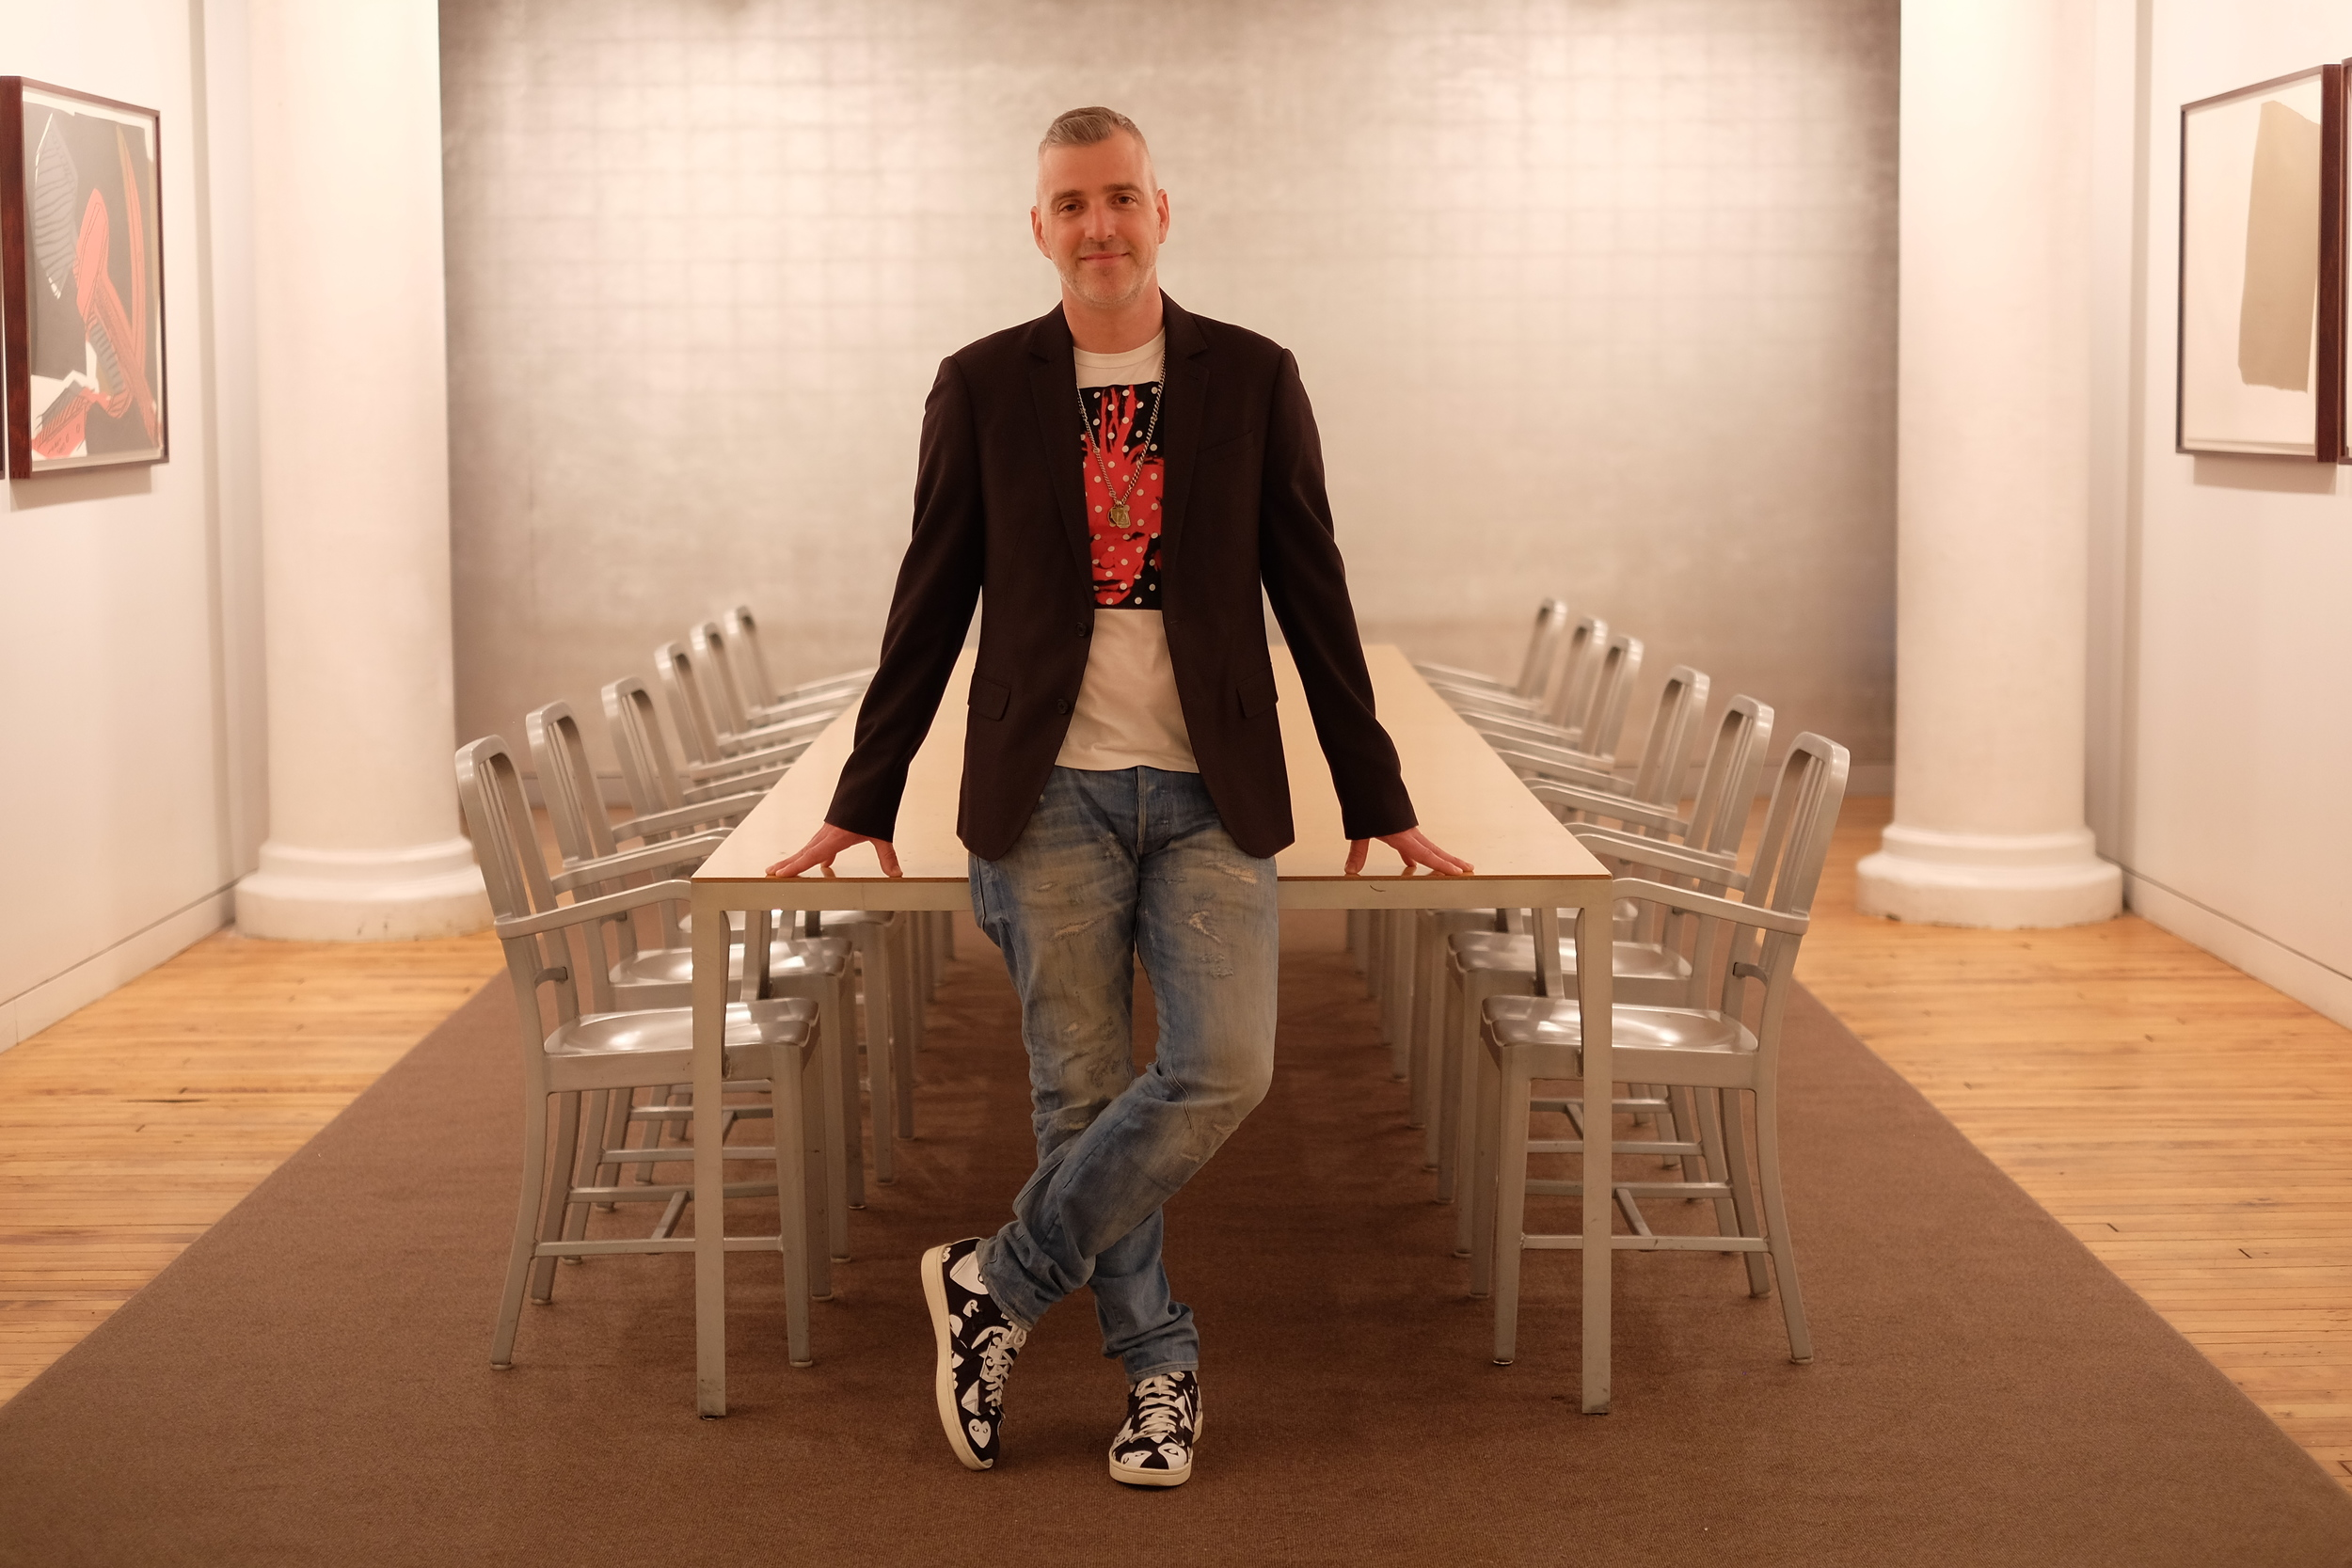 Michael in the conference room at The Andy Warhol Foundation.  Photo by James J. Williams III.